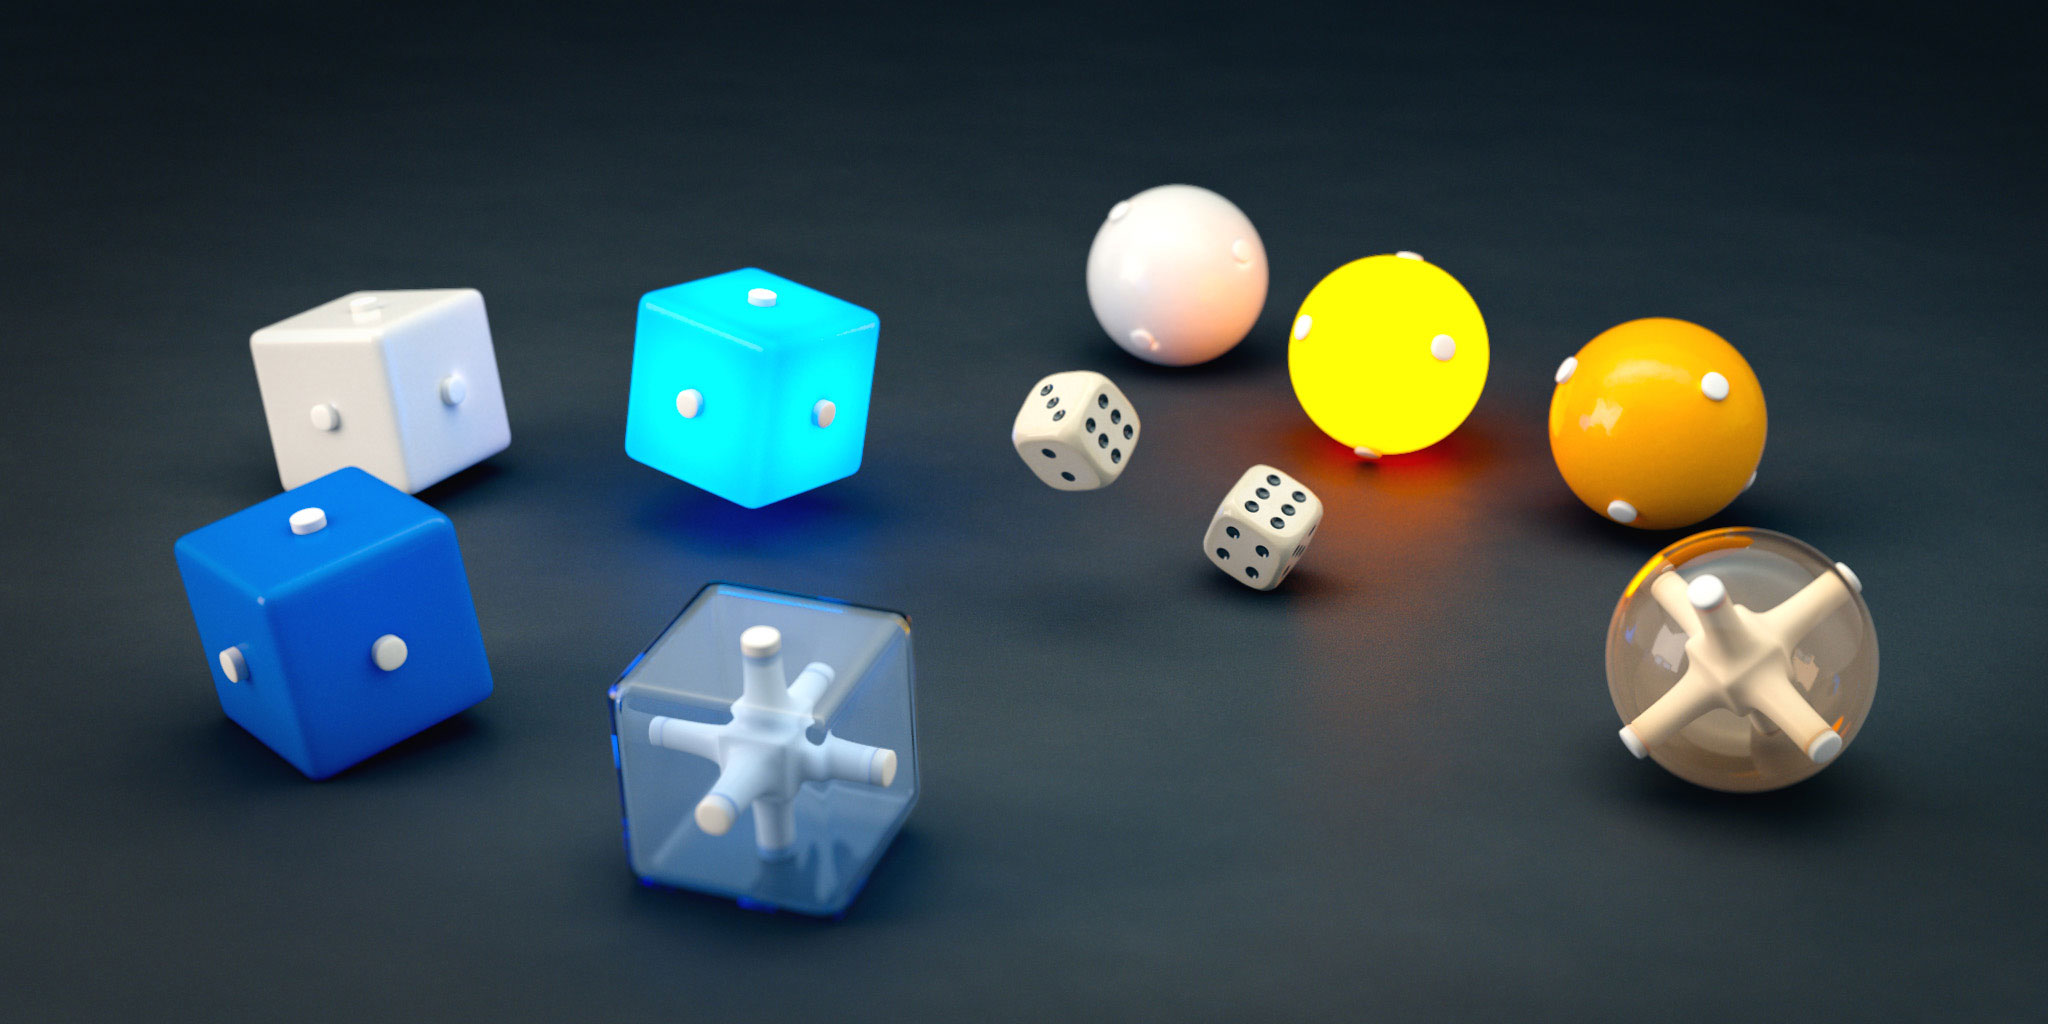 3D scale